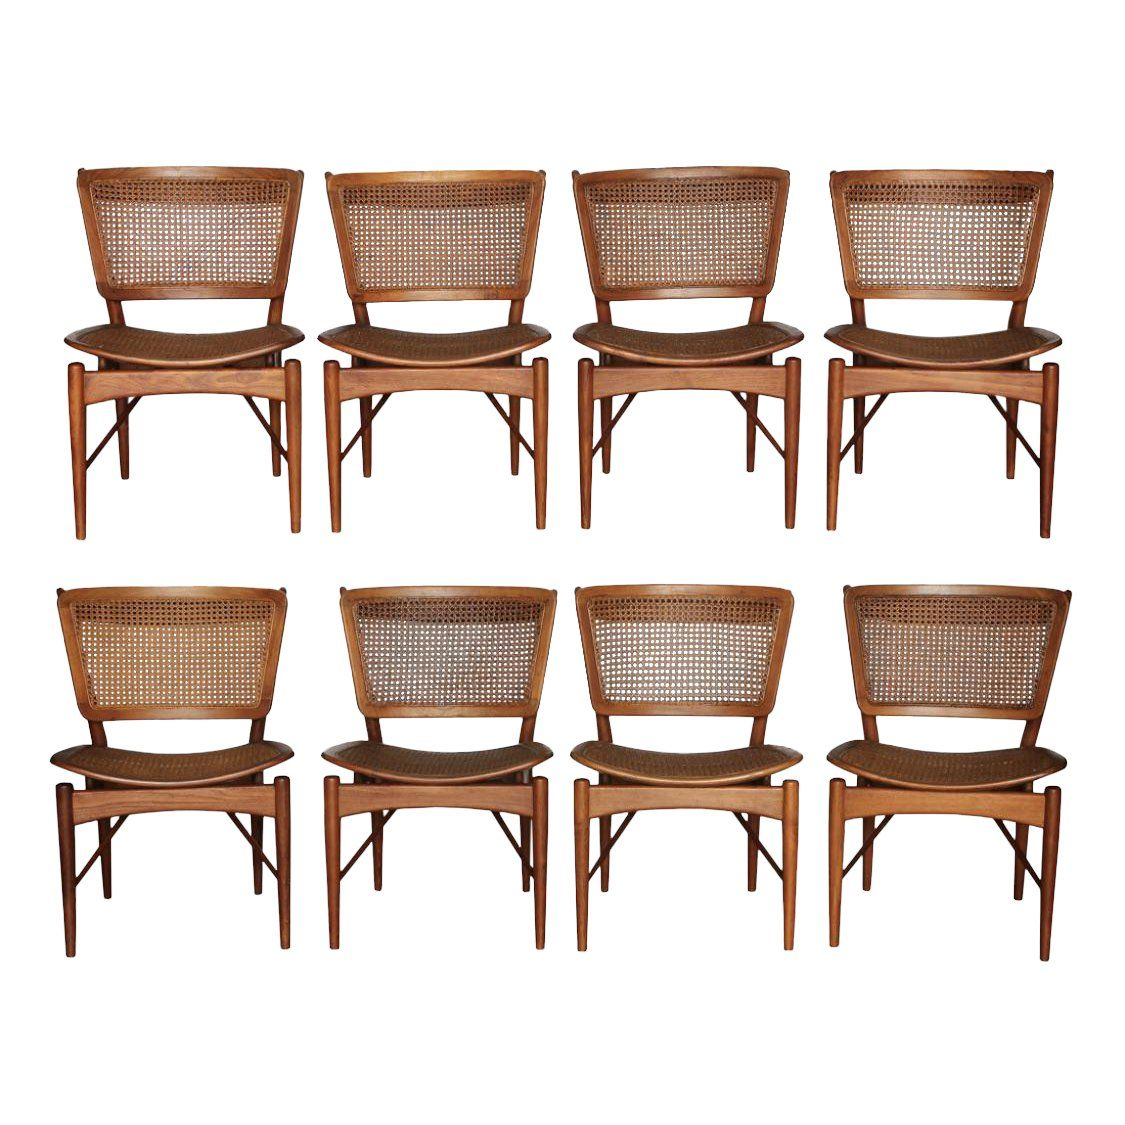 Wondrous 1950S Vintage Finn Juhl For Baker Teak Dining Chairs Set Theyellowbook Wood Chair Design Ideas Theyellowbookinfo